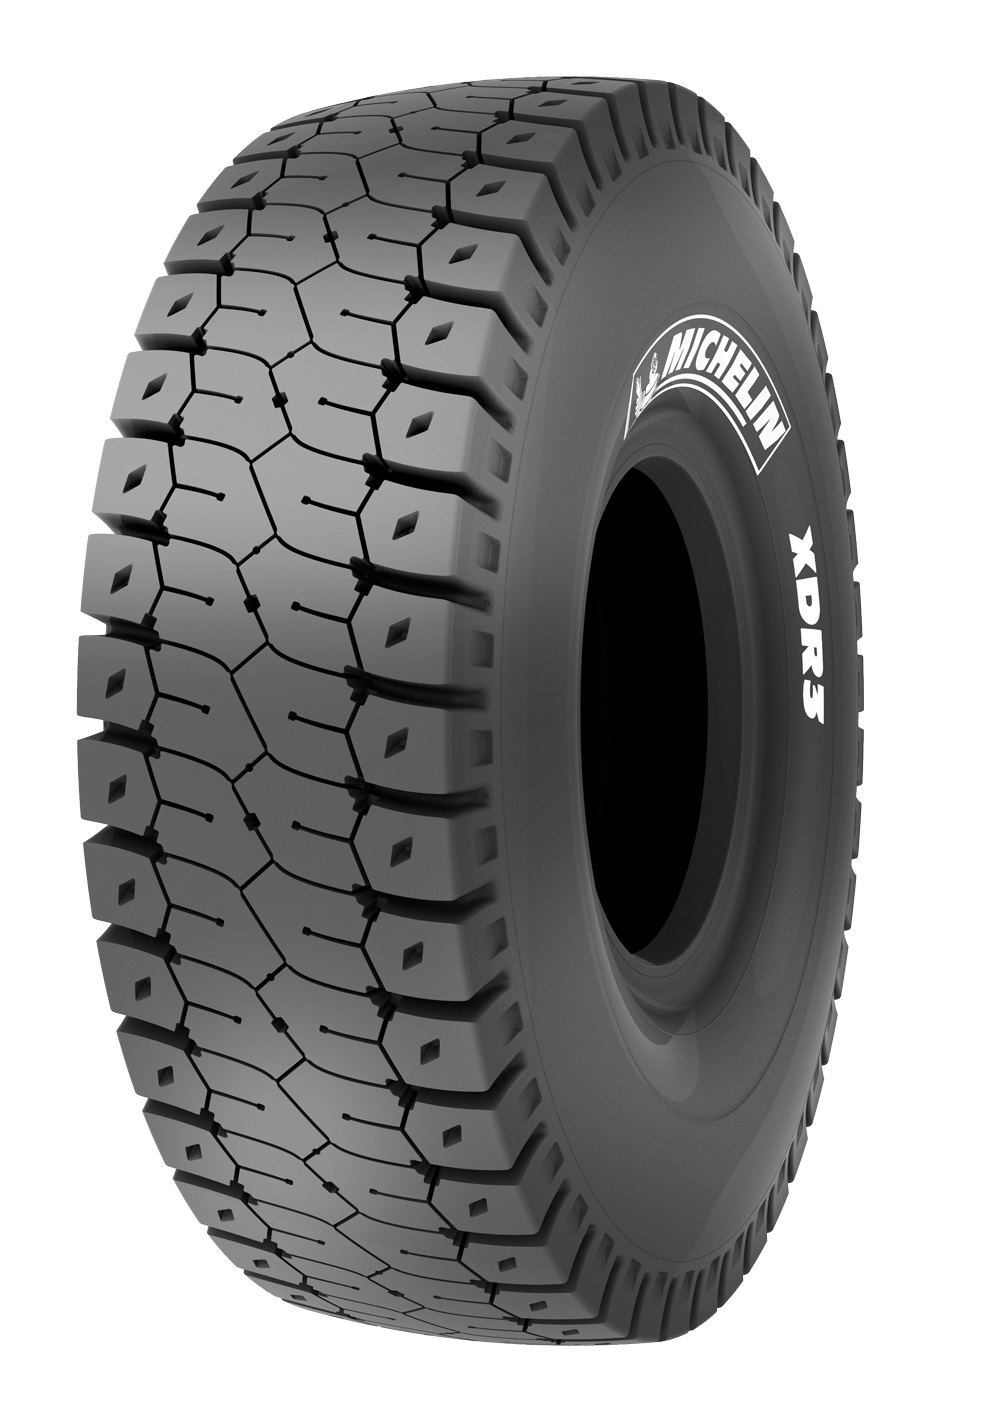 michelin-xdr3-tyre-front